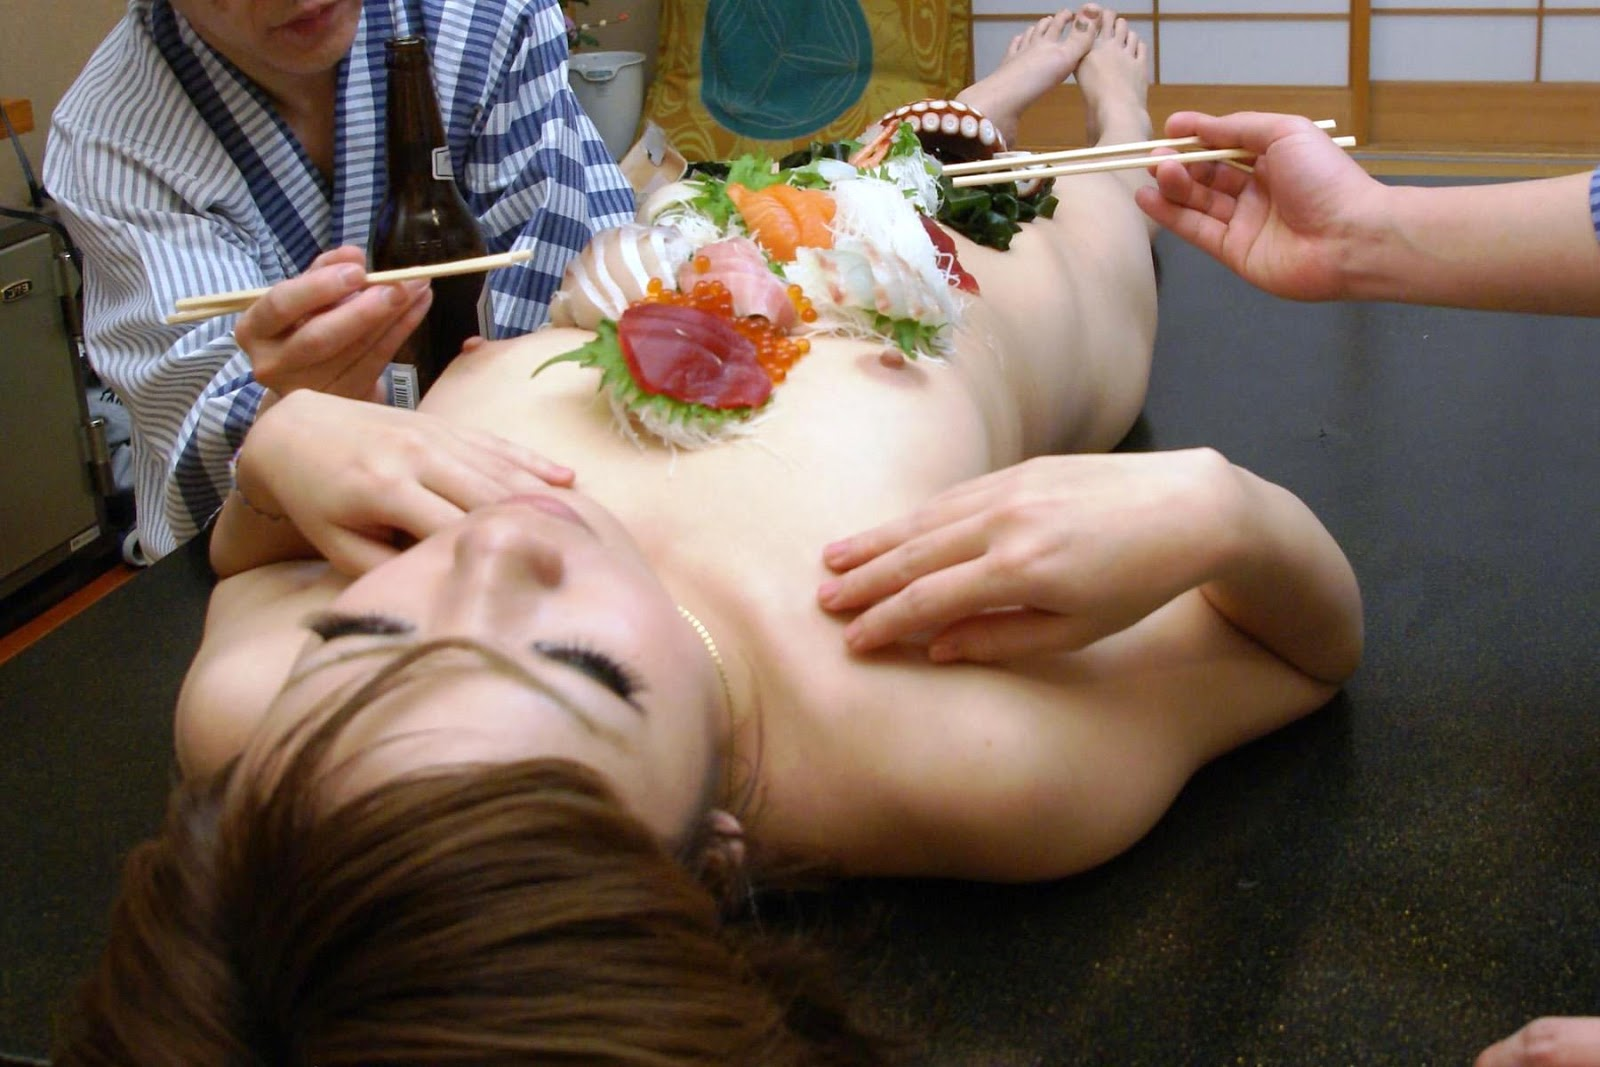 Nyotaimori, lxurious ingredients served on body of naked women originated in Ishikawa Prefecture and continues to be practiced there.